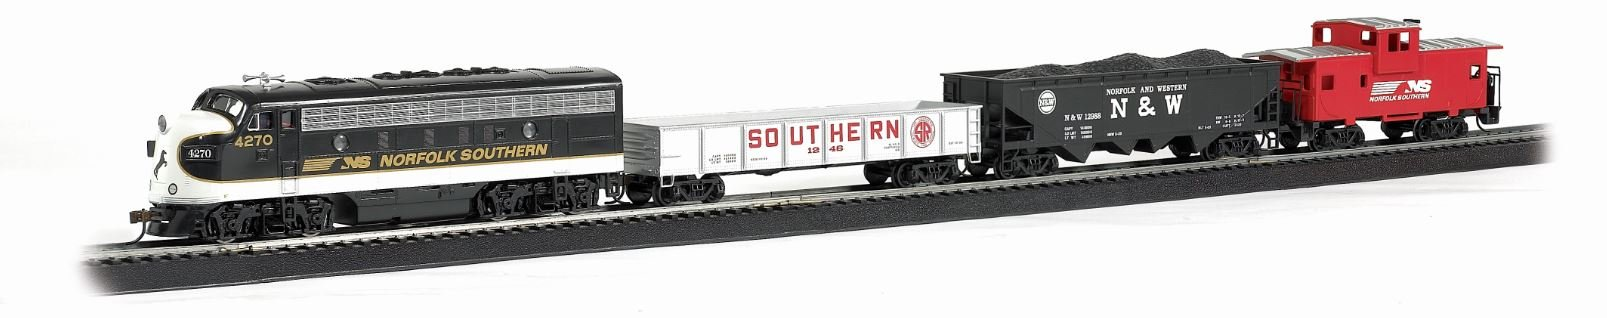 Bachmann Trains - Thoroughbred Ready To Run Electric Train Set - HO Scale by Bachmann Trains